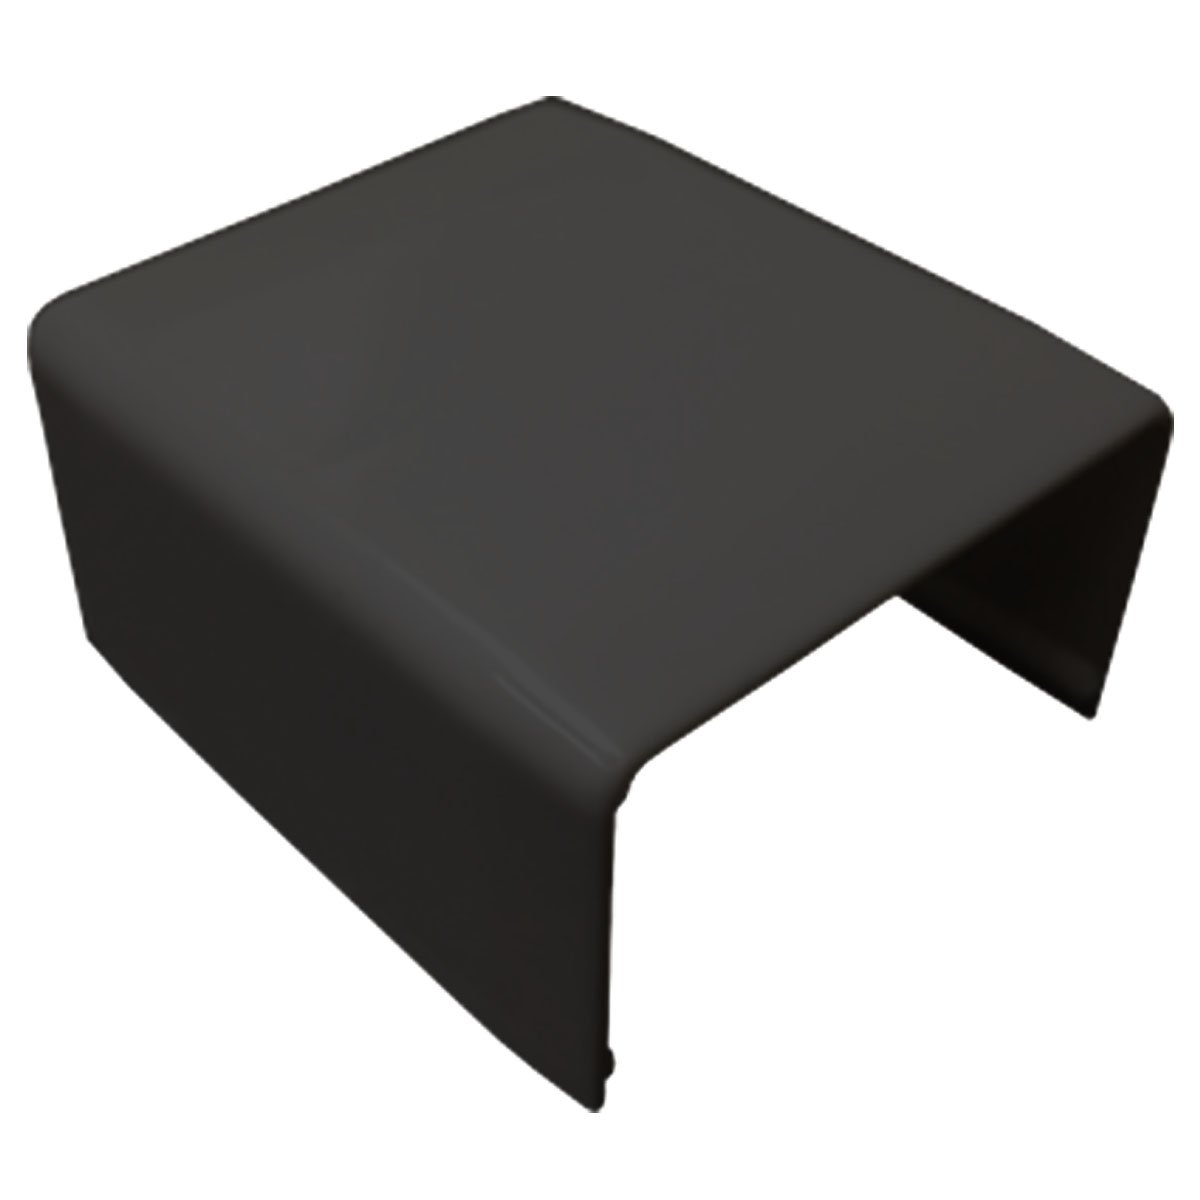 Joint Cover for Medium (MED1) Raceway - 1 Piece - Color: Black by Electriduct (Image #1)